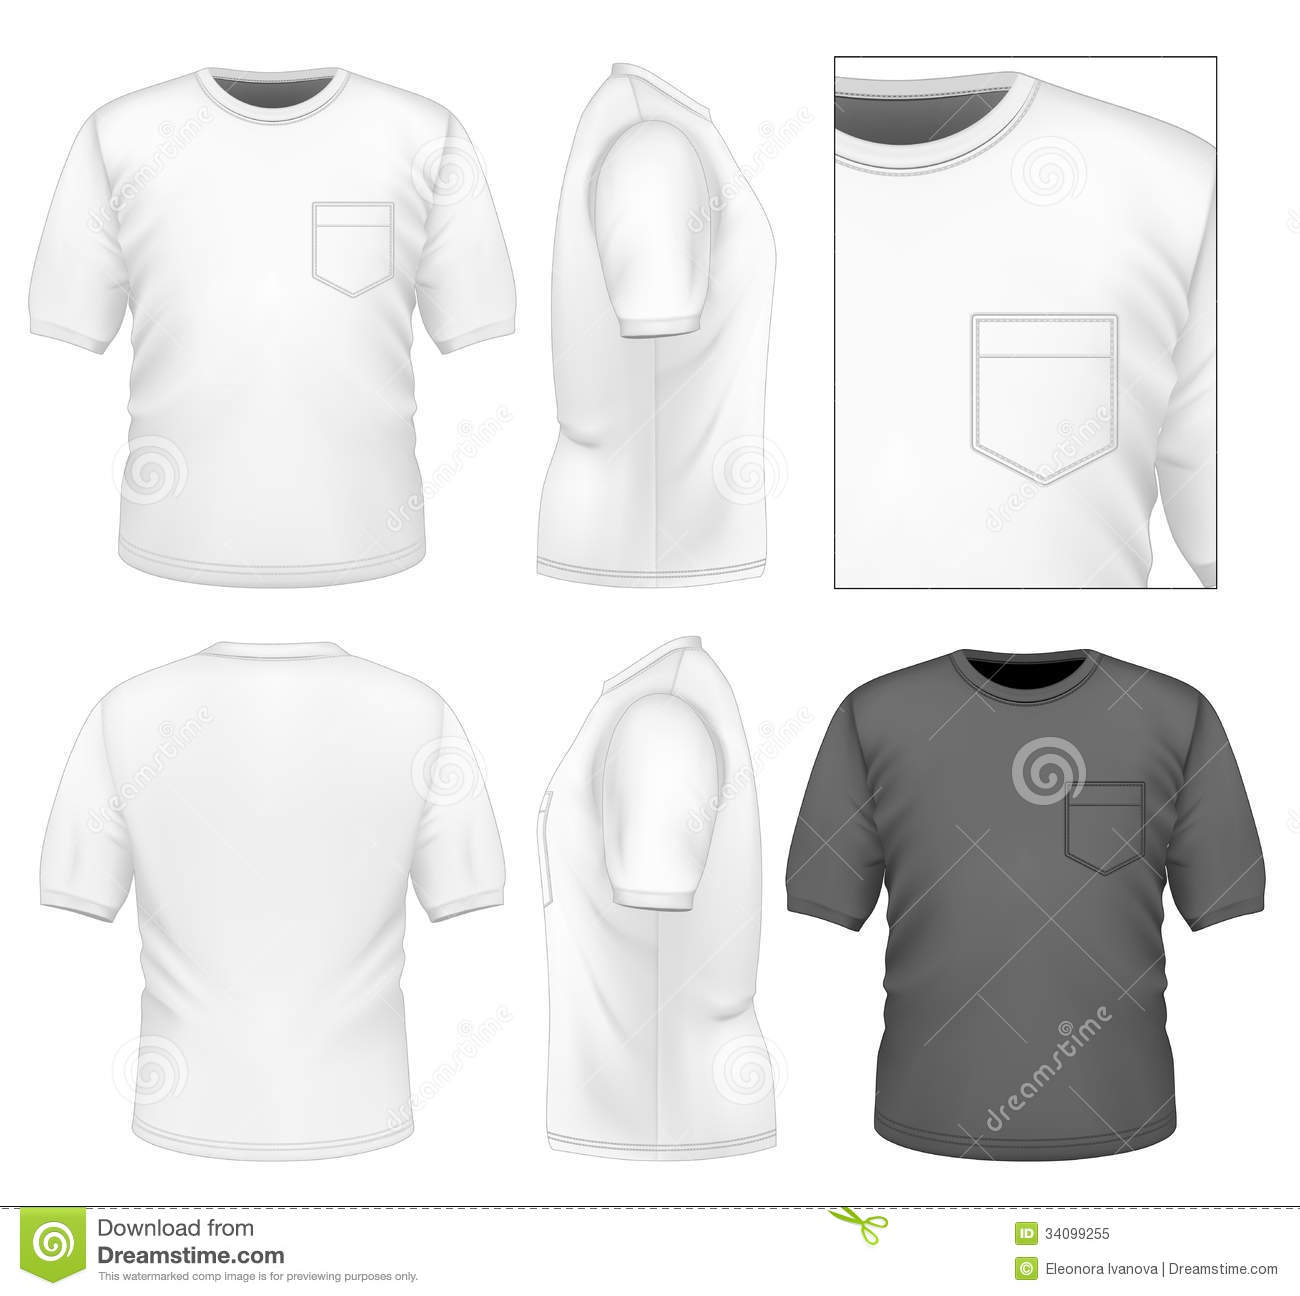 Mens t shirt design template stock vector image 34099255 men s t shirt design template pronofoot35fo Gallery